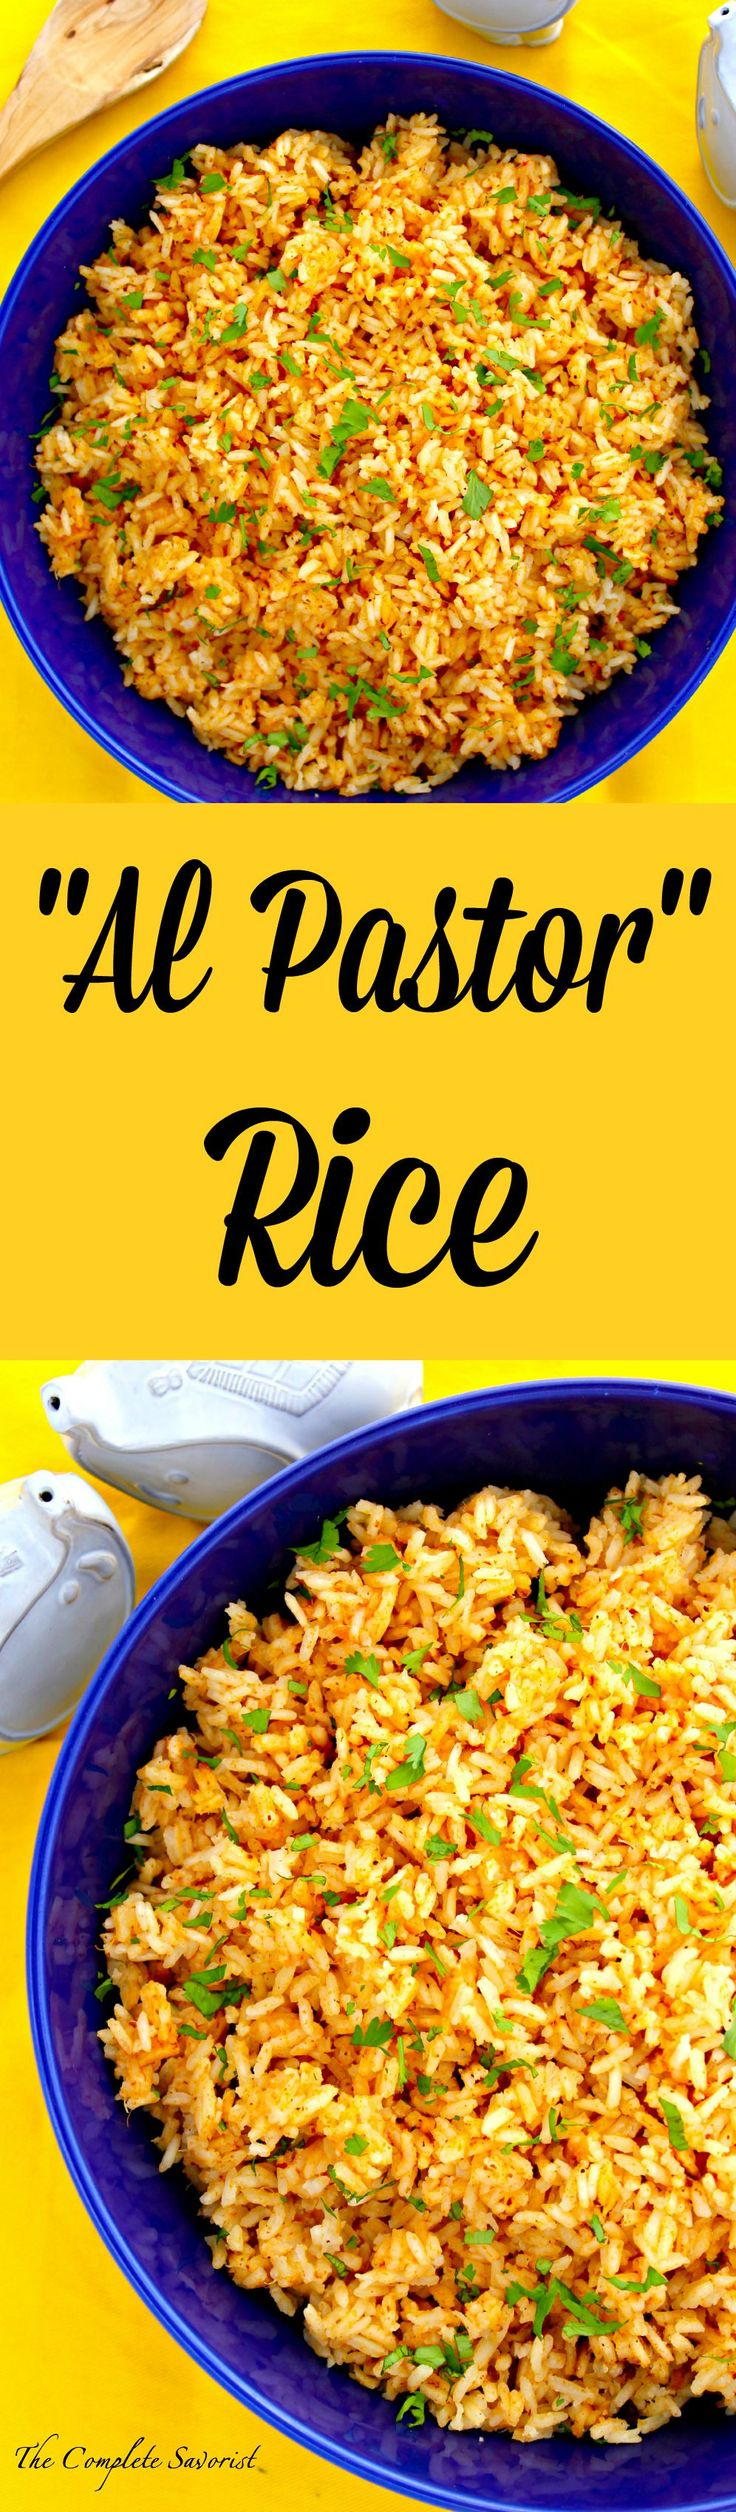 Al Pastor Rice ~ Rice made using the flavors of al pastor, the Mexican classic ~ The Complete Savorist